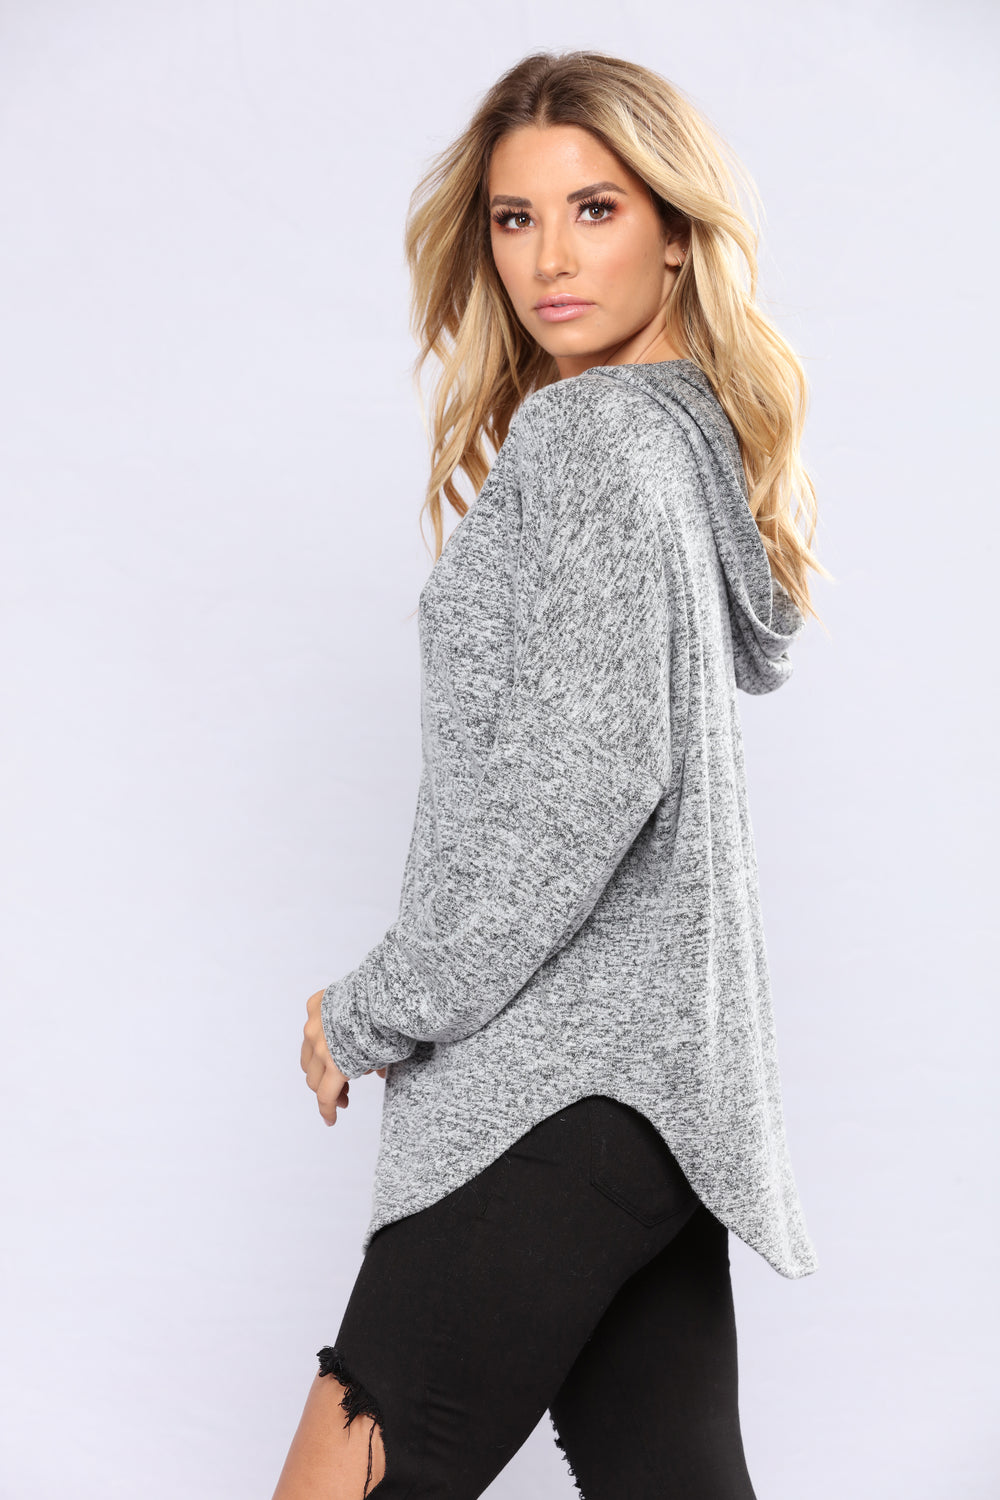 Life Gets Better Sweater - Charcoal